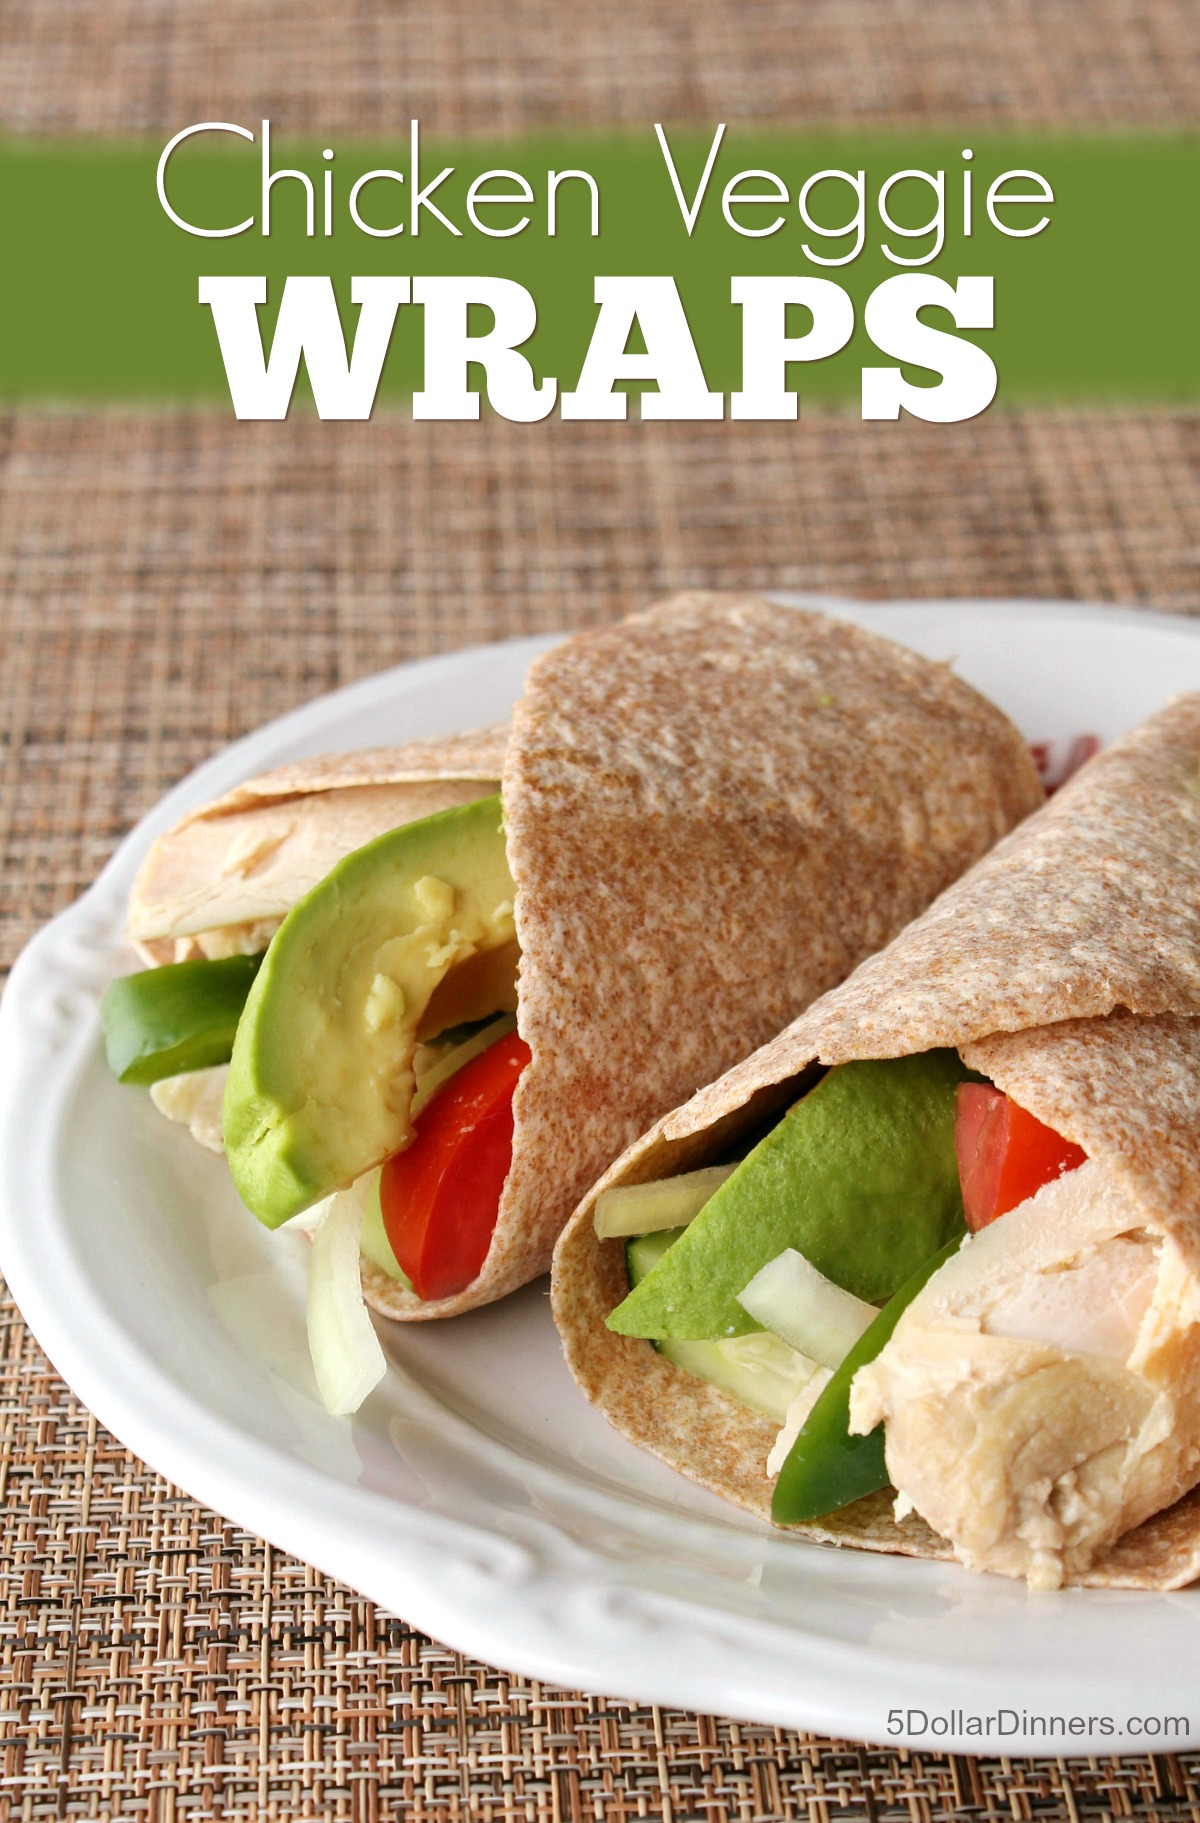 Chicken Veggie Wraps from 5DollarDinners.com